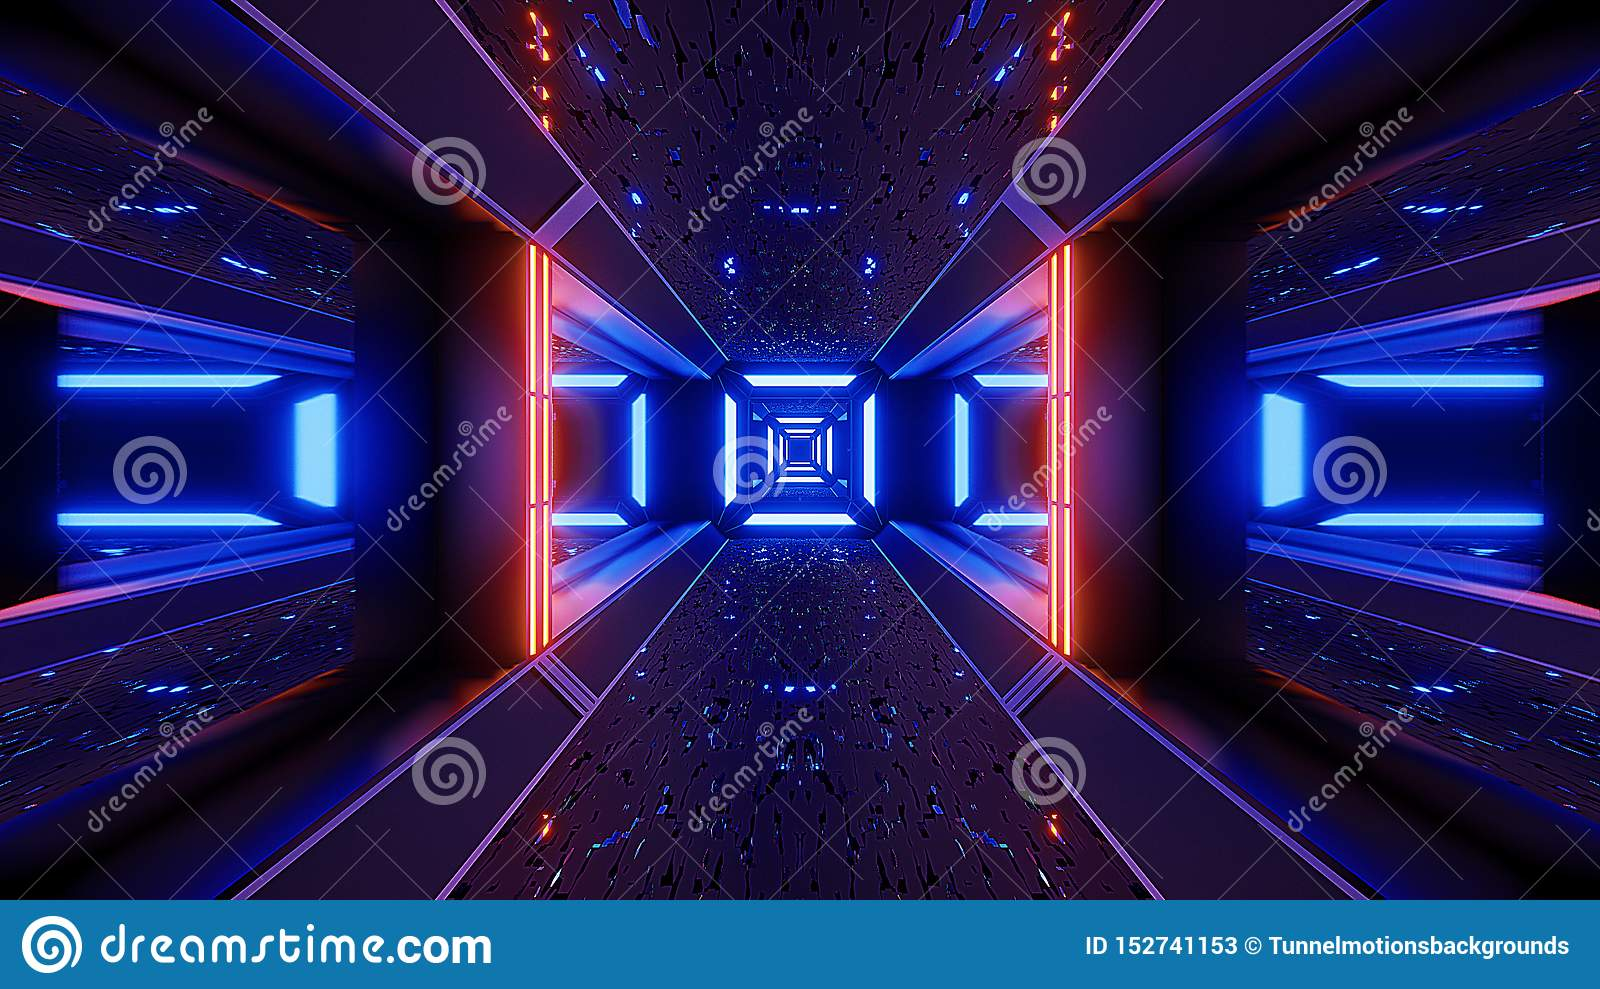 Futuristice Scifi Alien Tunnel Wallpaper 3d Rendering Stock